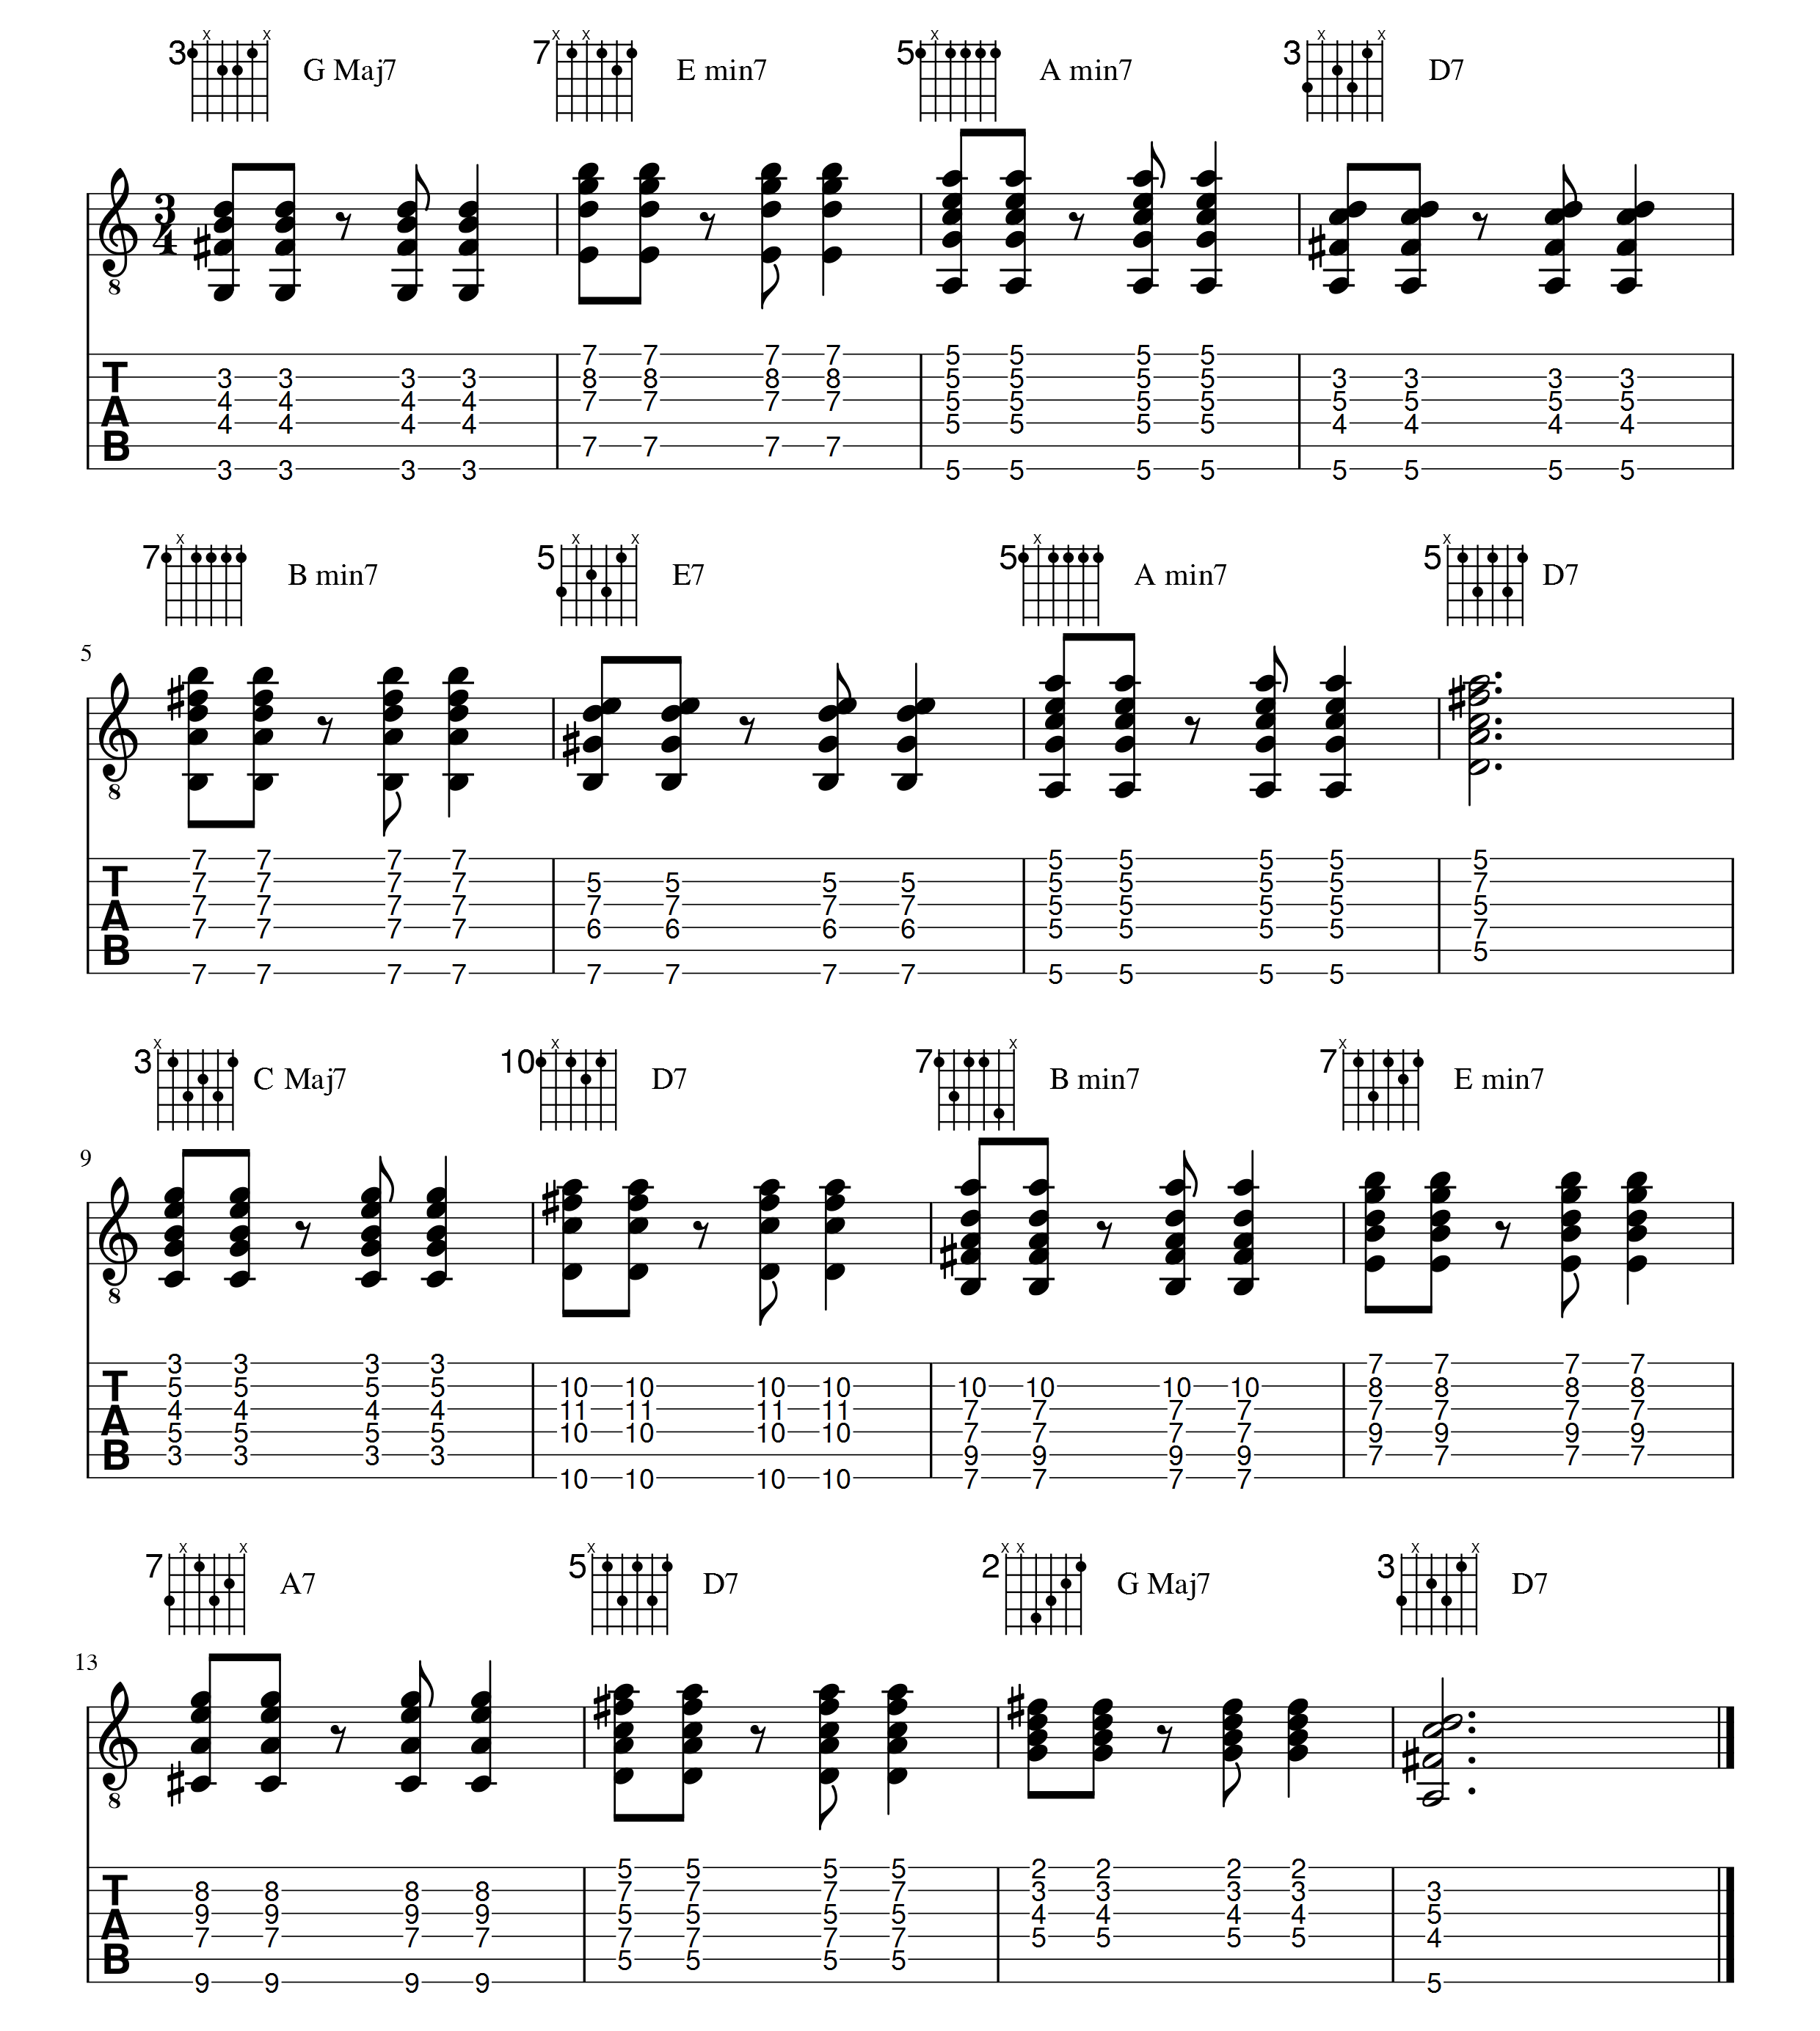 tablature progression accord jazz septieme guitar trainer ligne 1 apprendre la guitare